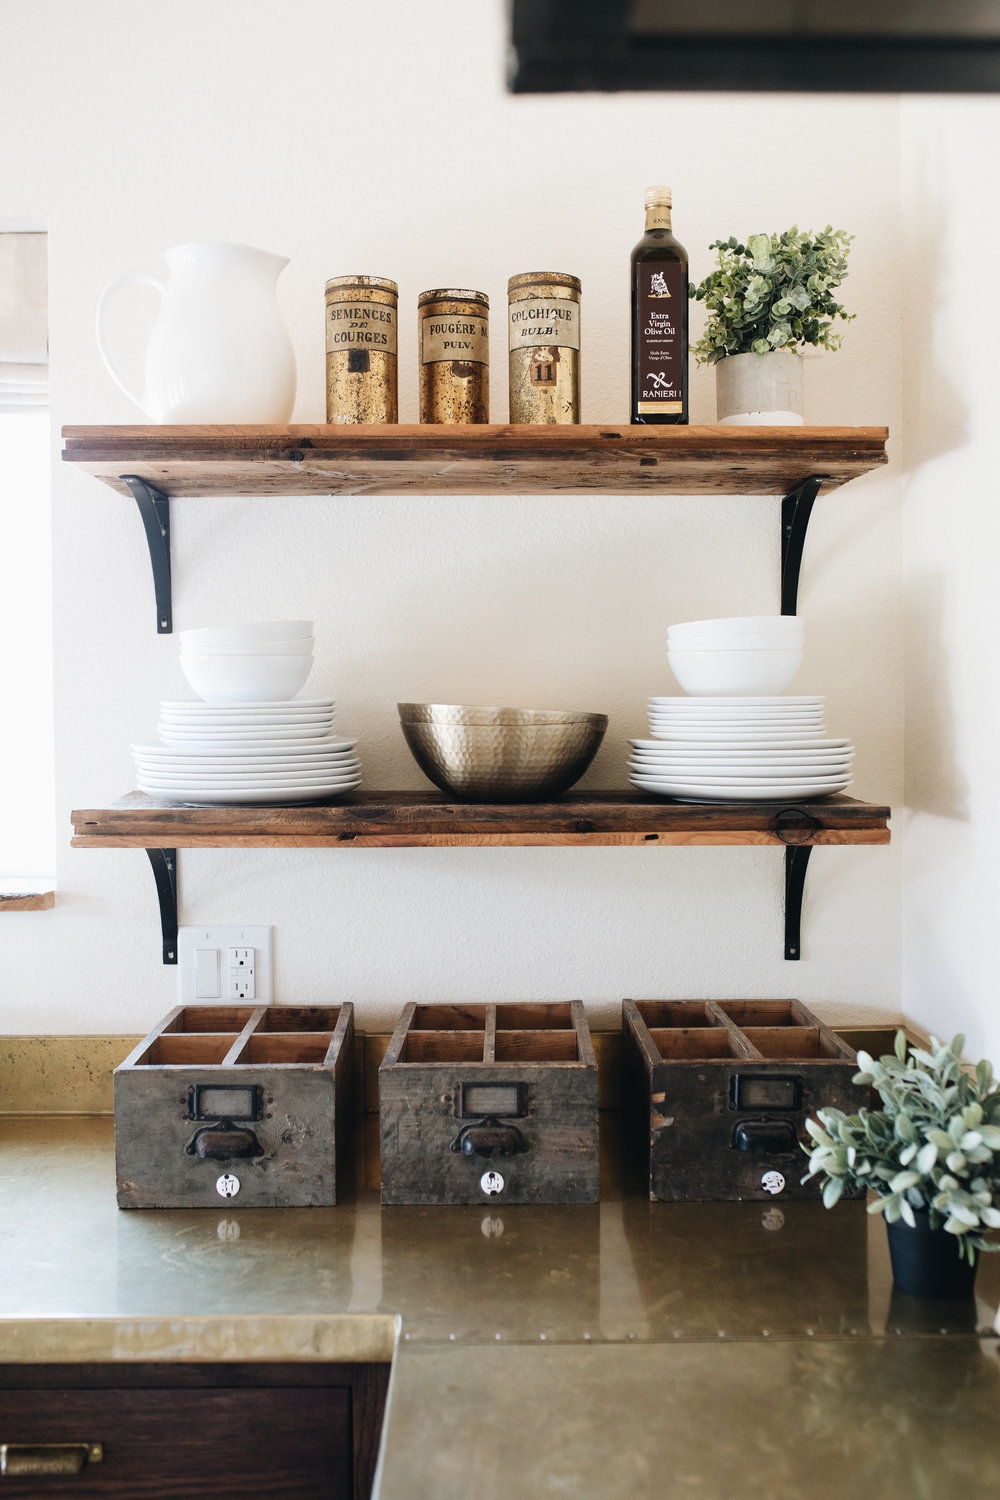 The Vintage Round Top Kitchen Decor